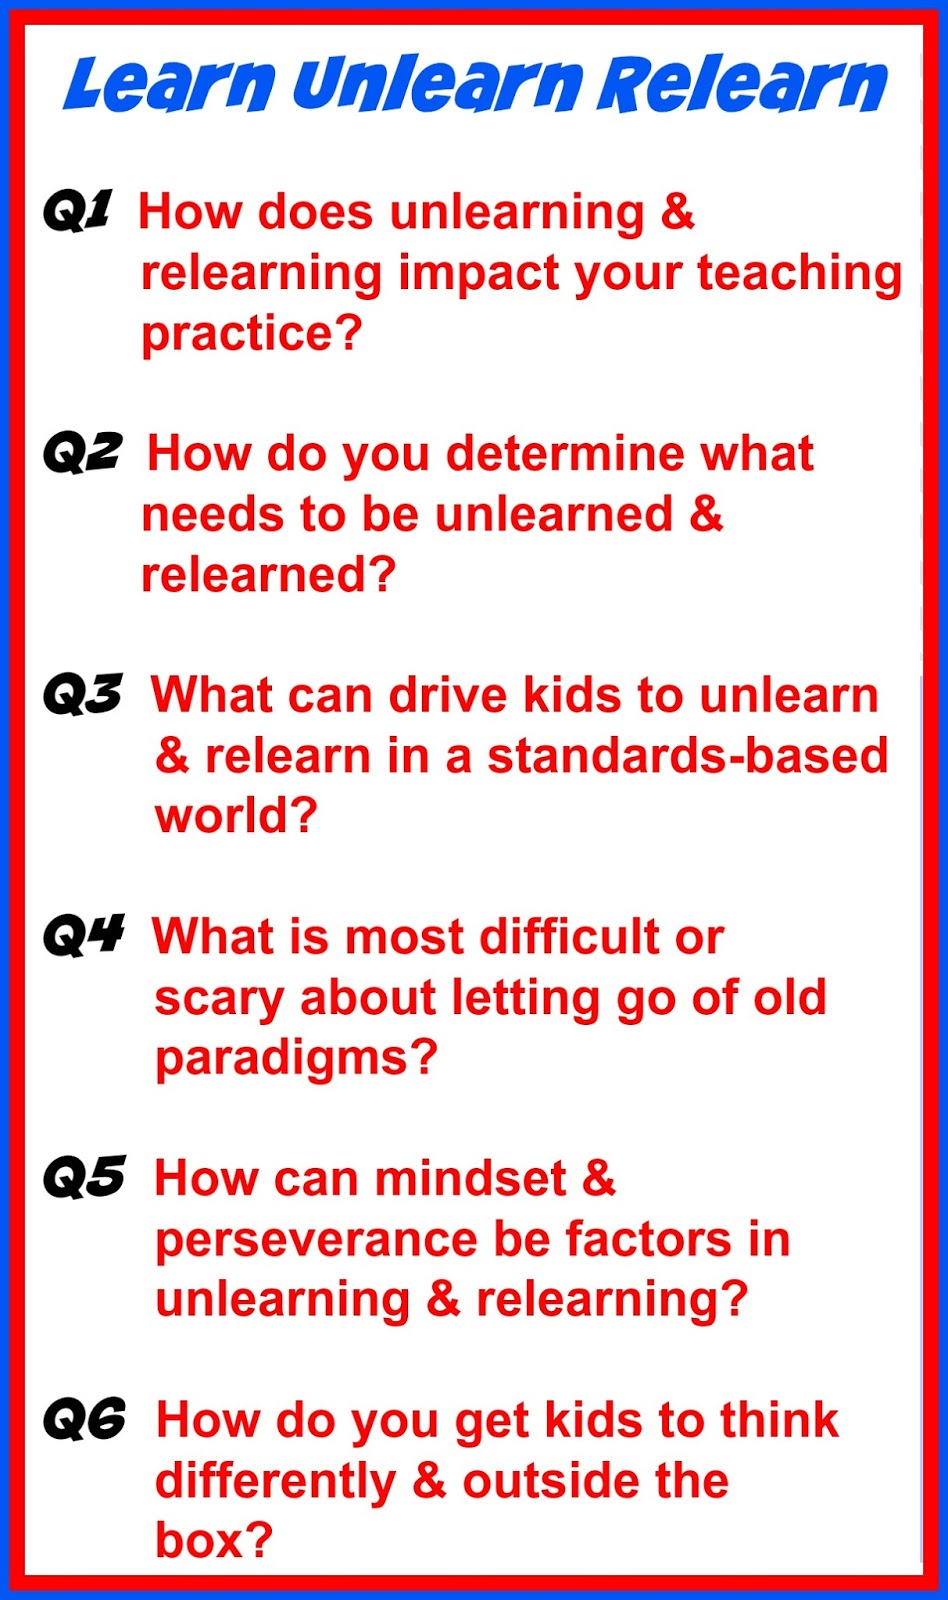 Personalize Learning: Learn, Unlearn, And Relearn